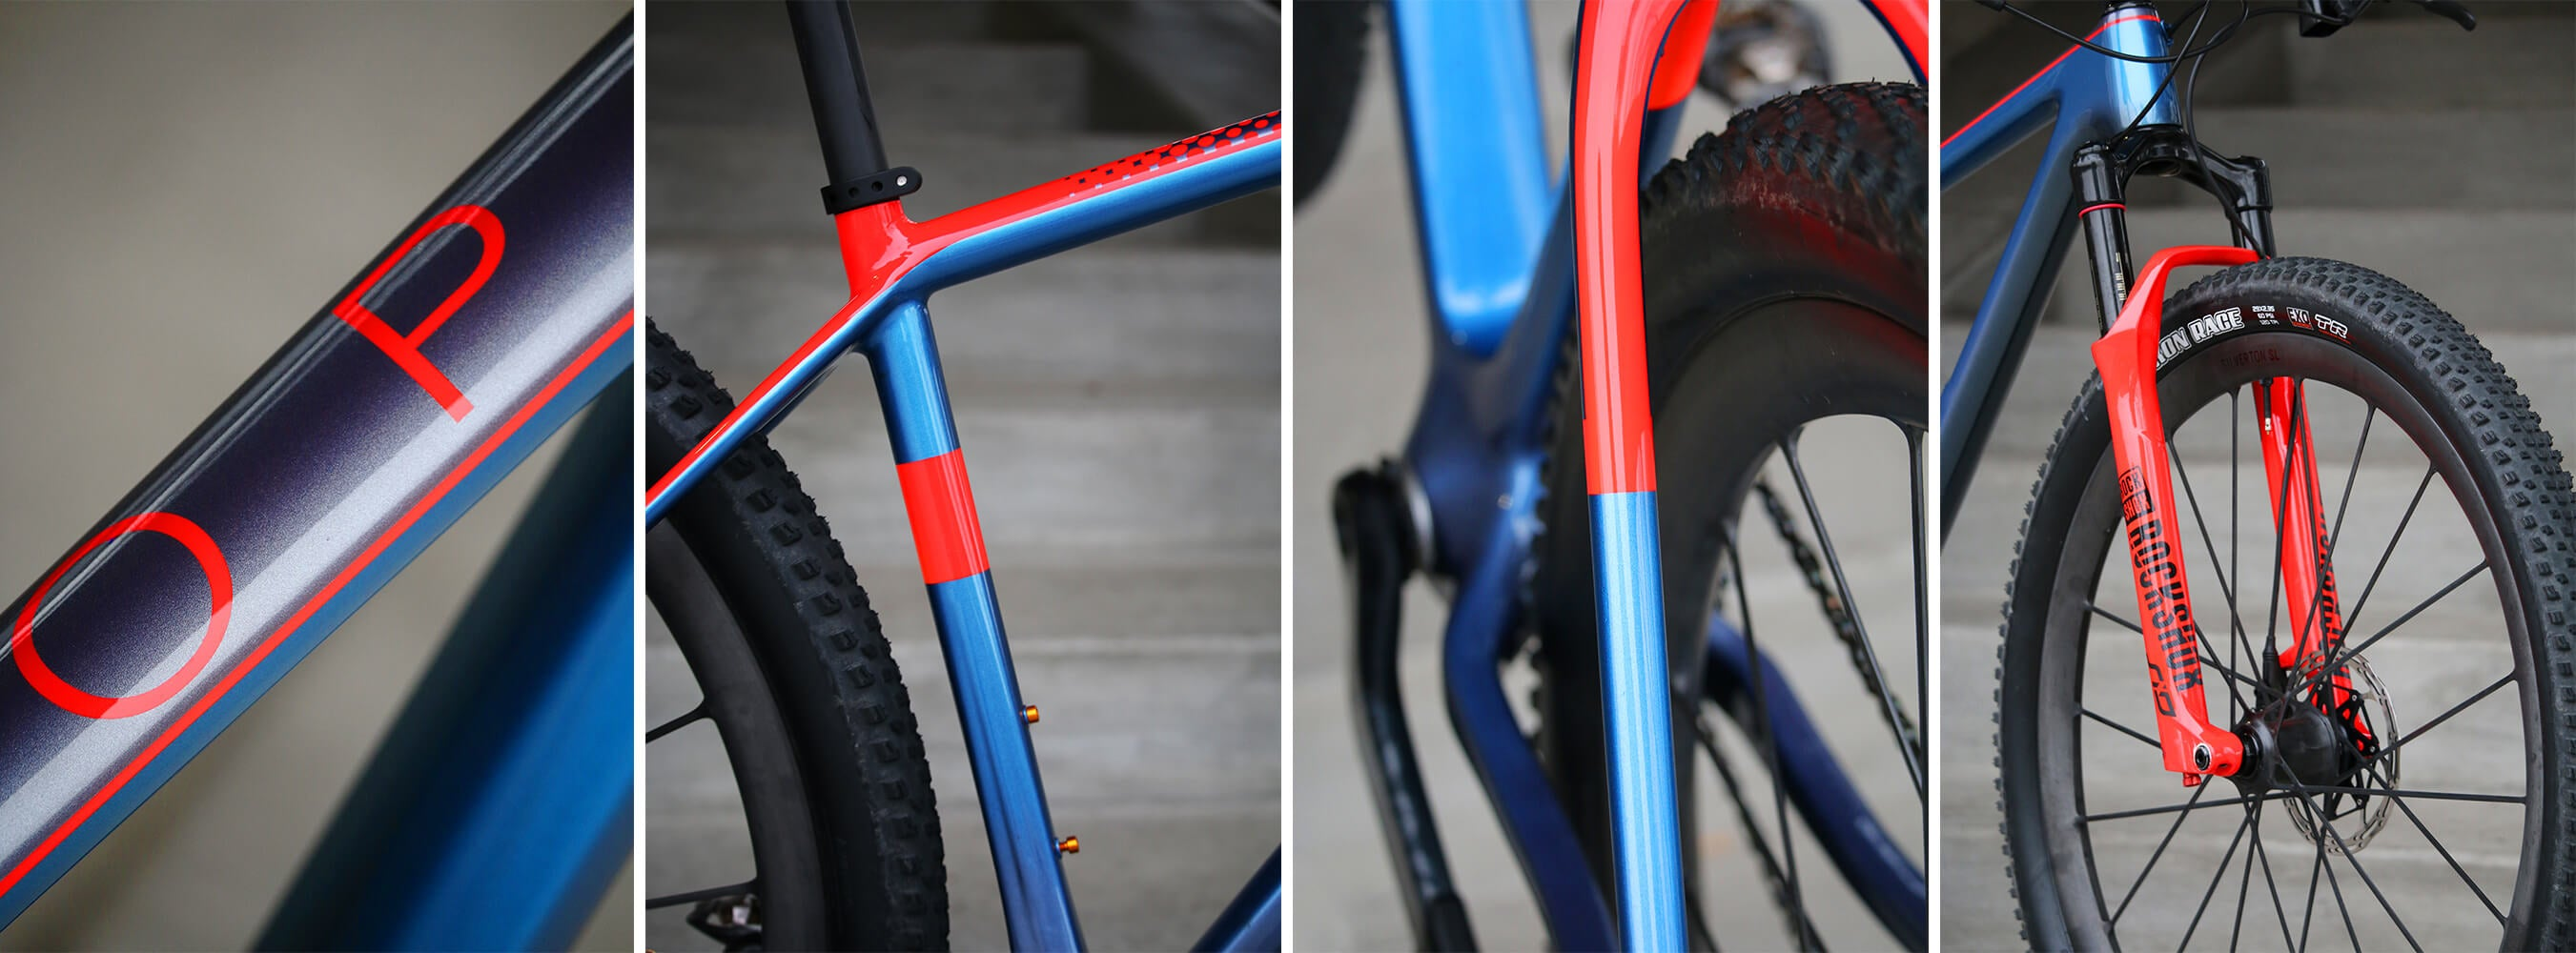 OPEN Cycle ONE Plus Custom RTP Ready to Paint - Contender Bicycles